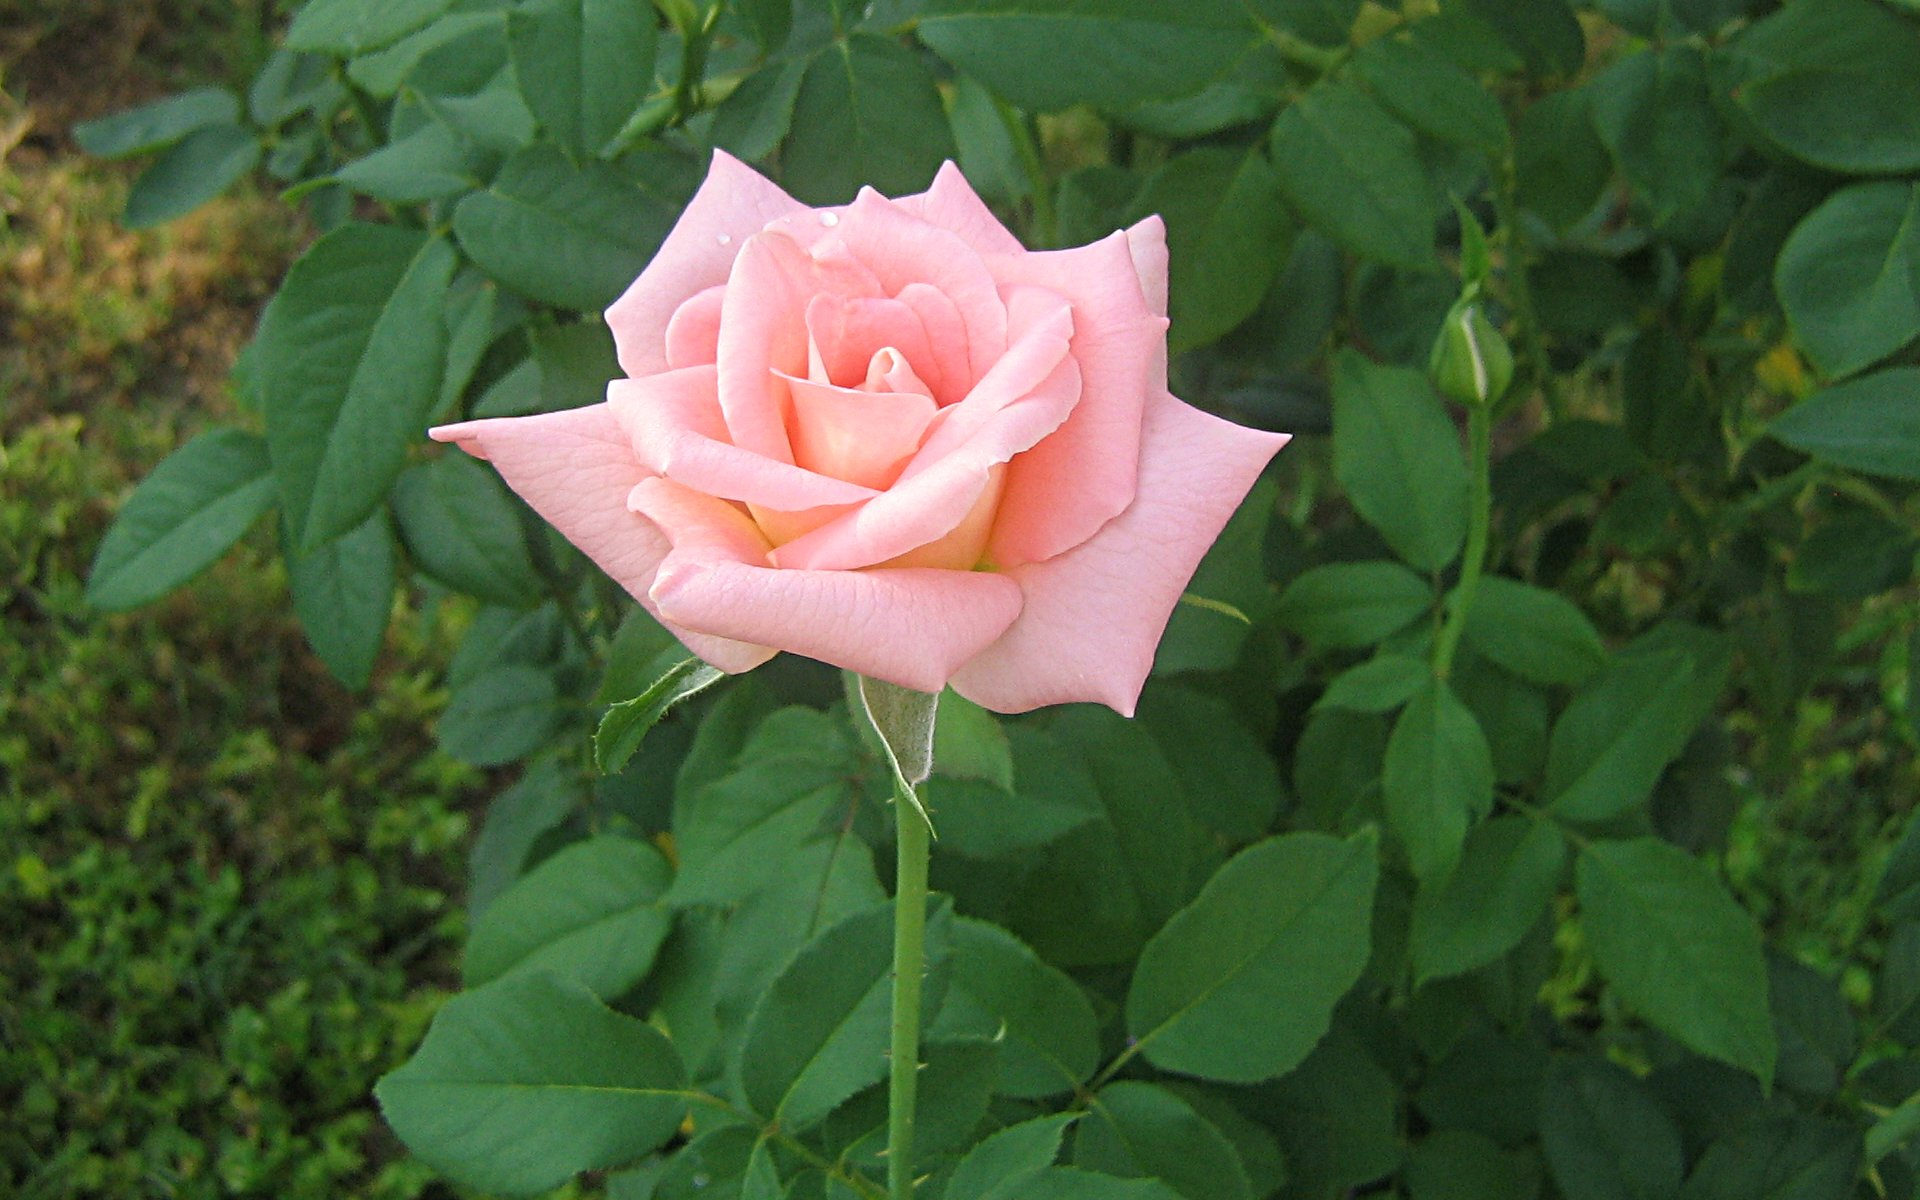 wallpapers widescreen pink roses - photo #29